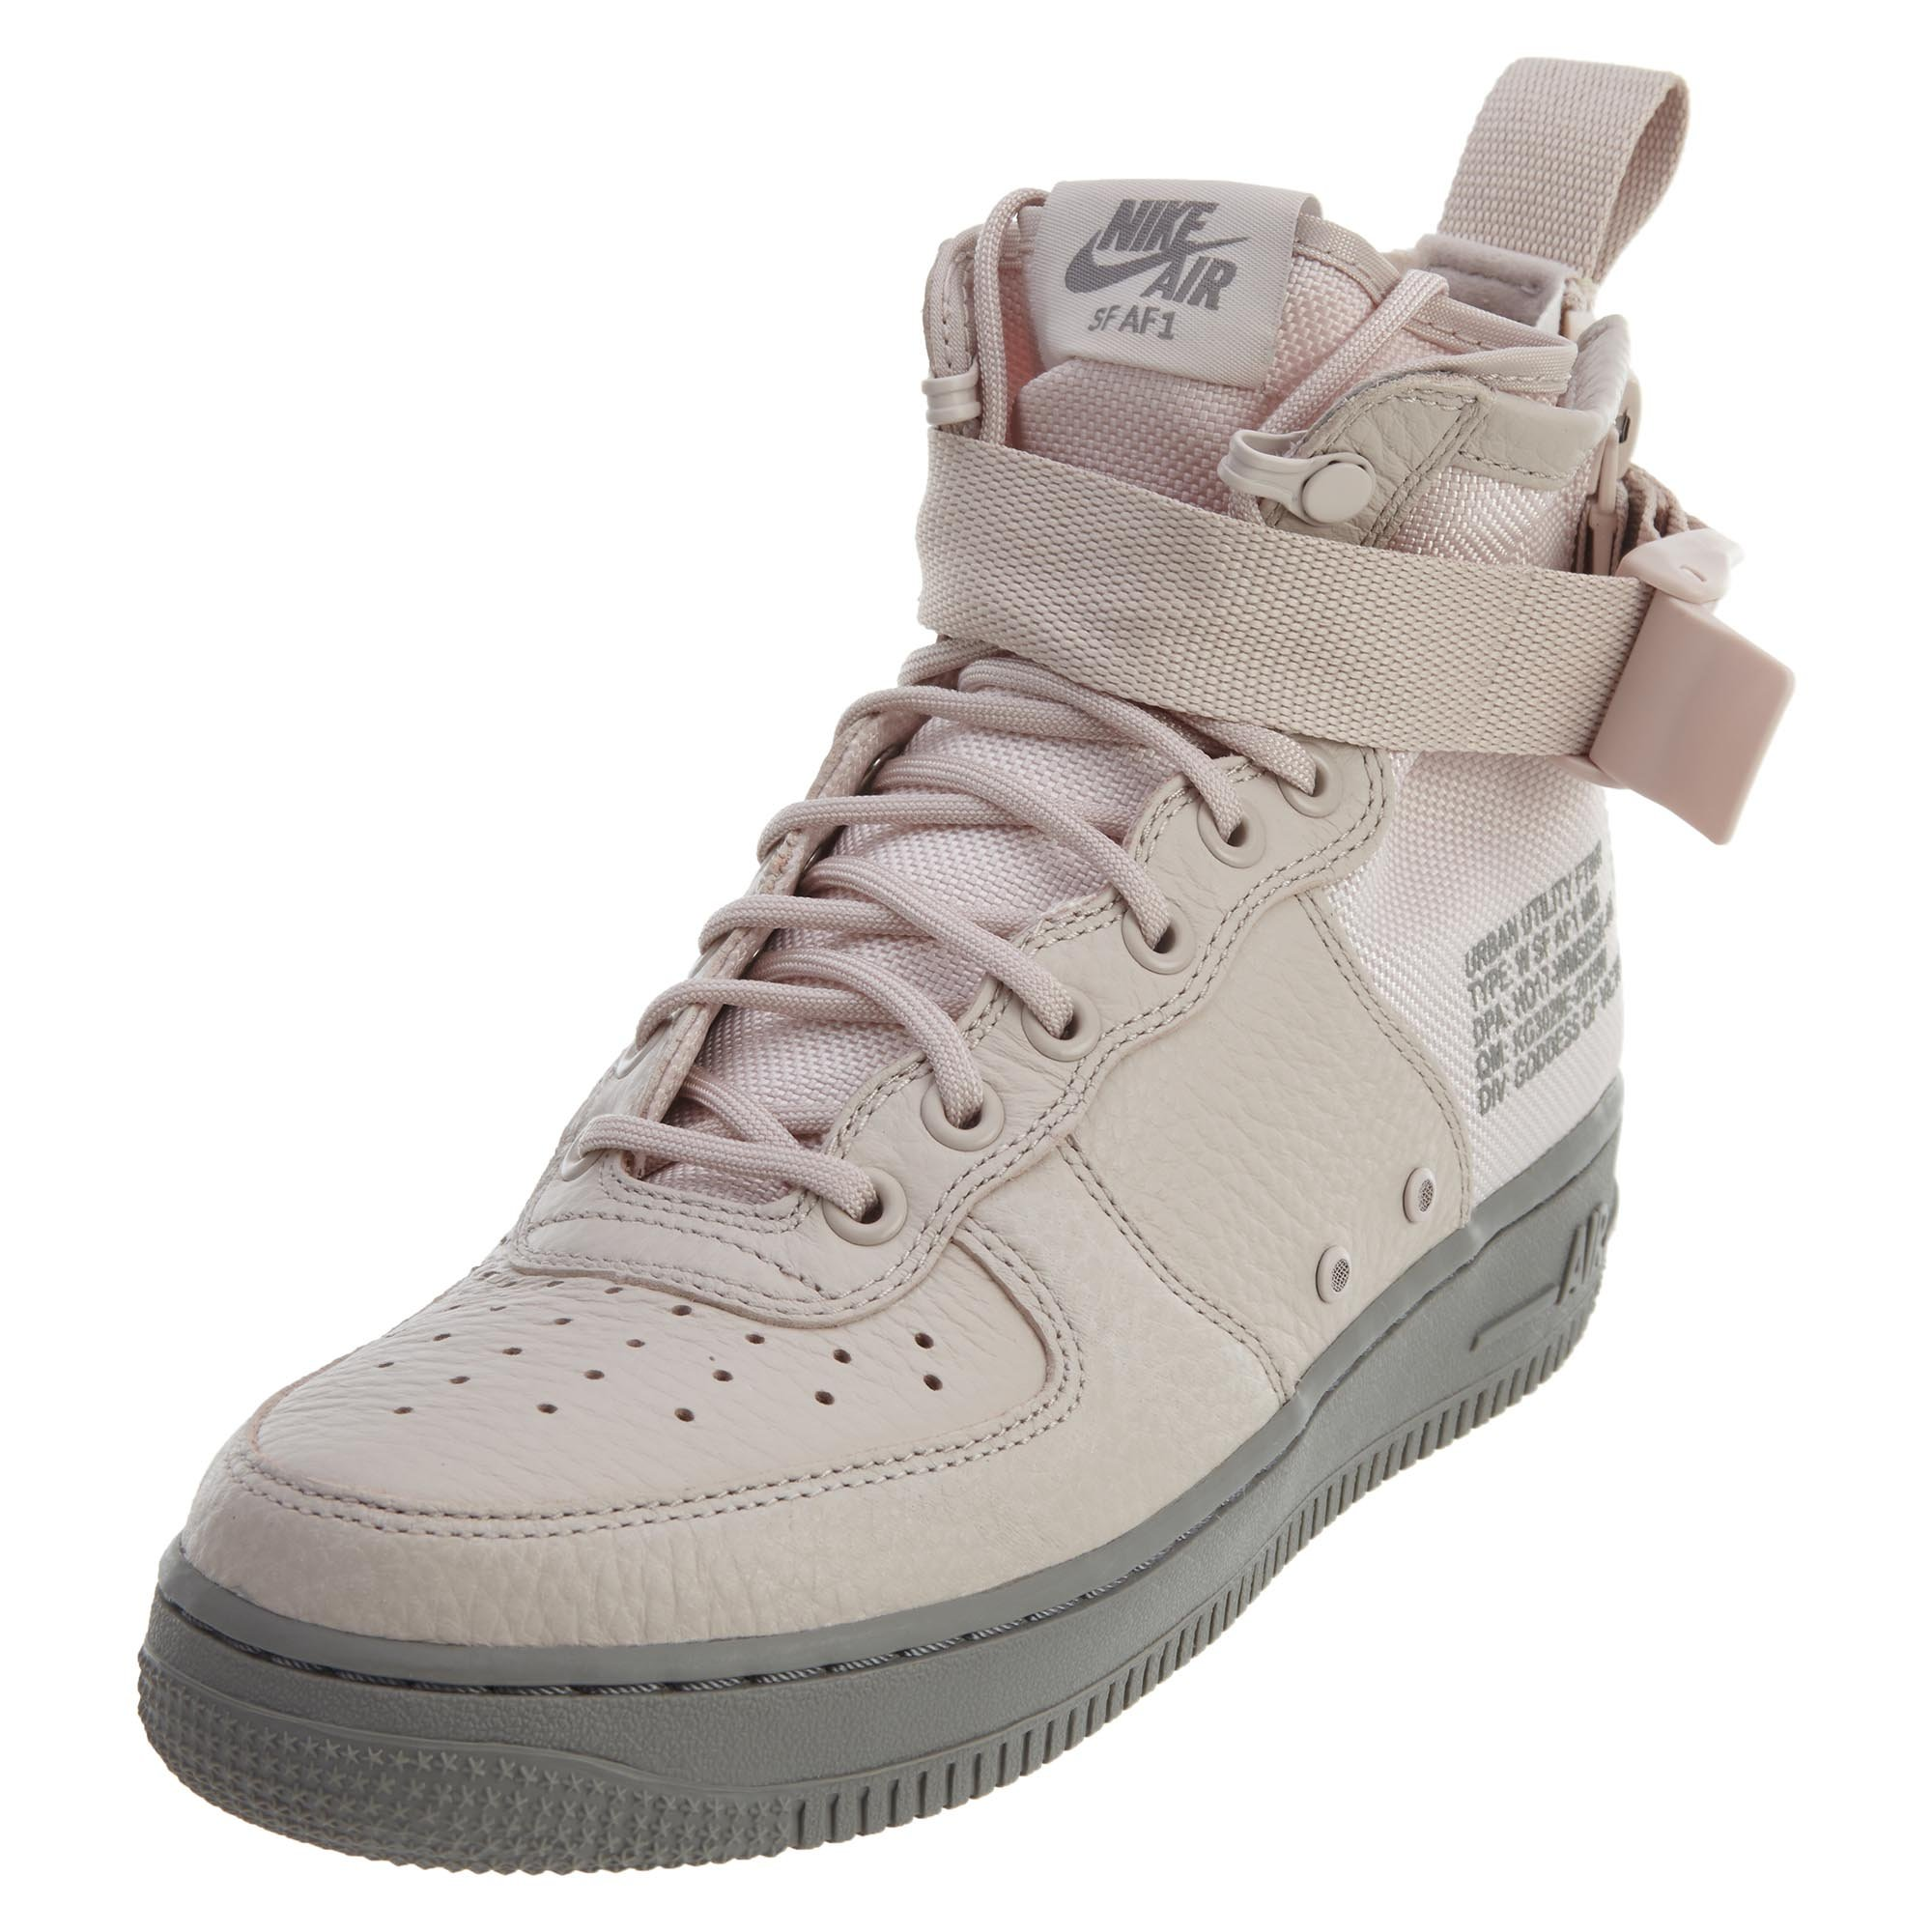 Nike Sf Af1 Mid Womens Style: AA3966-600 Size: 10 M US